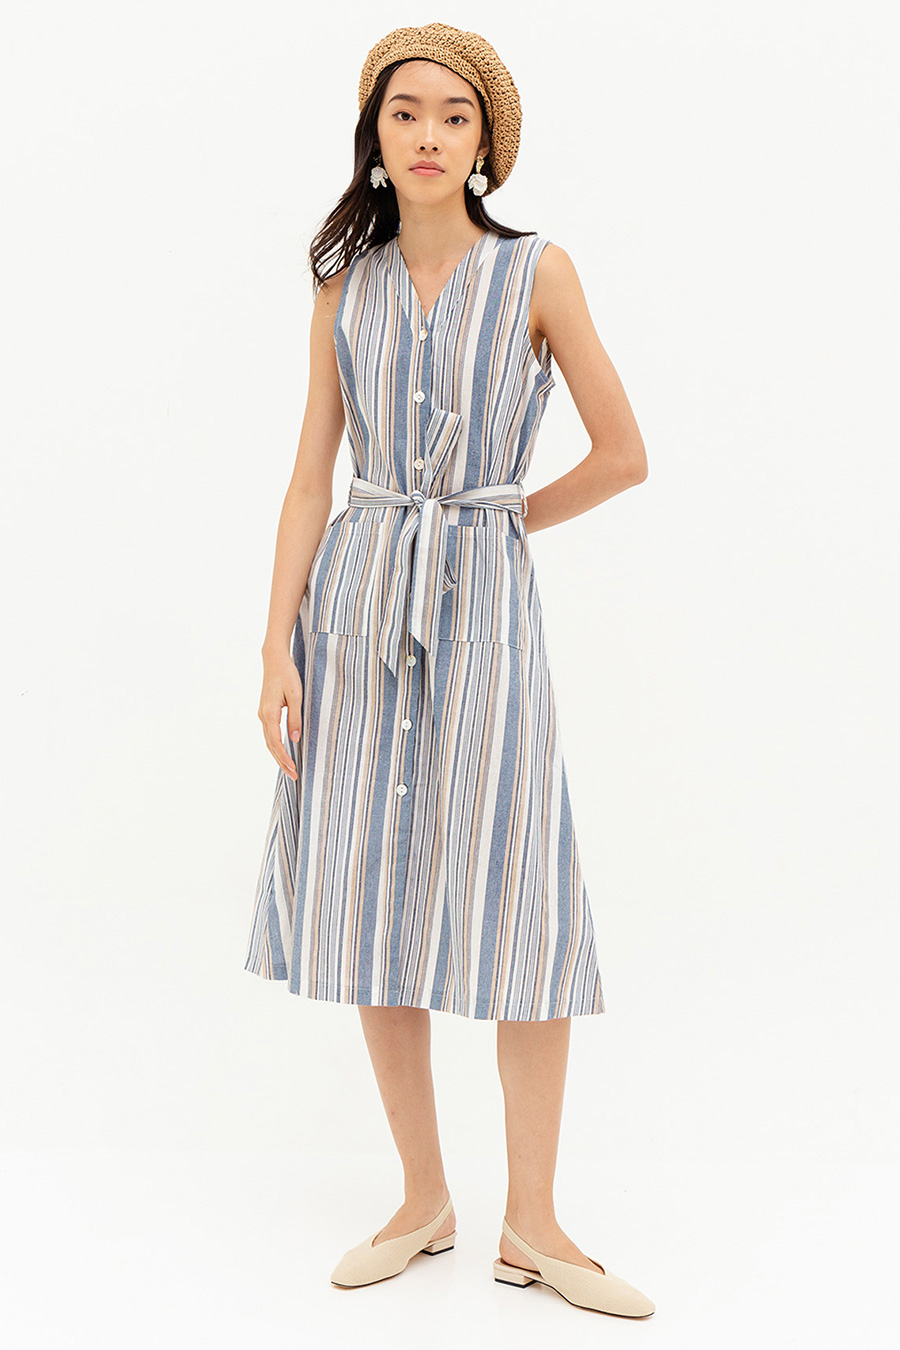 DAUPINE DRESS - MADDIE STRIPE [BY MODPARADE]